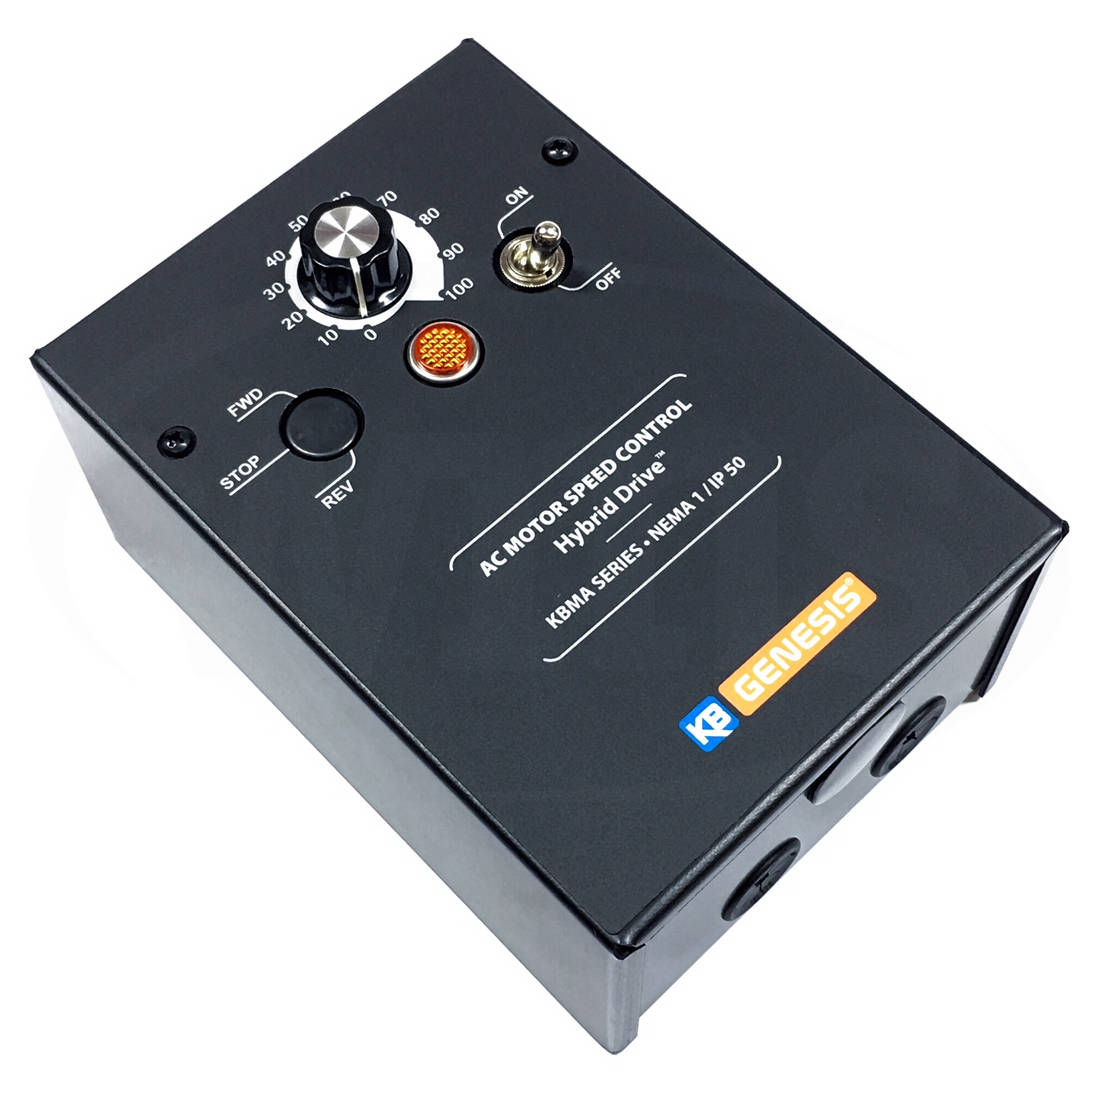 KB Electronics 9533 Adj Frequency Drive, KBMA-24 1